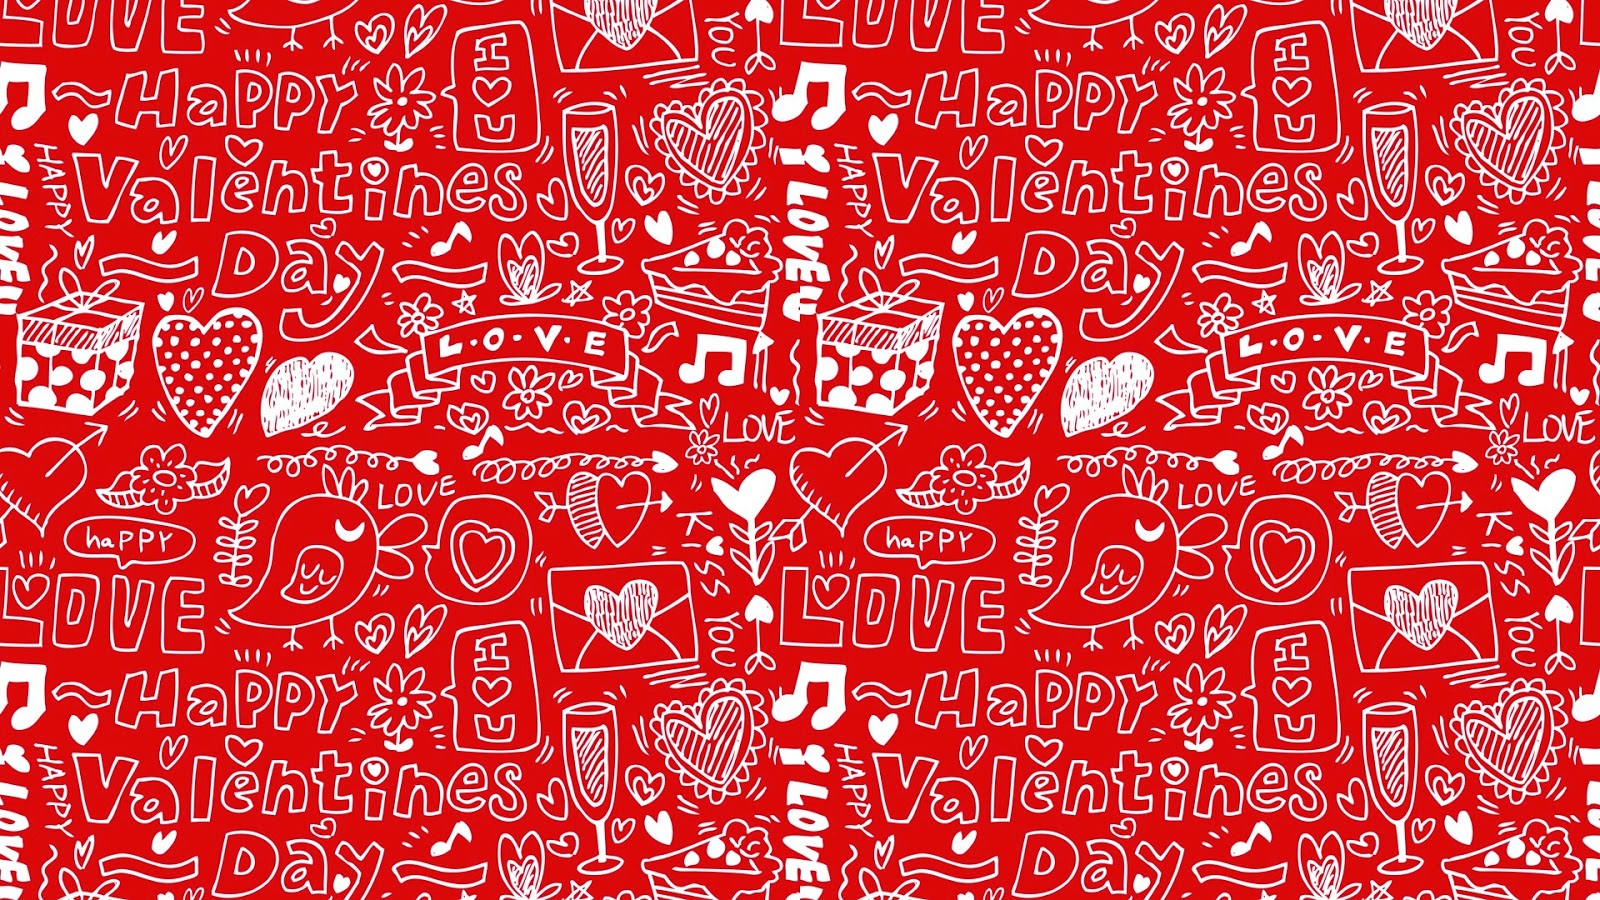 valentines-day-collage-red-background-white-text.jpg